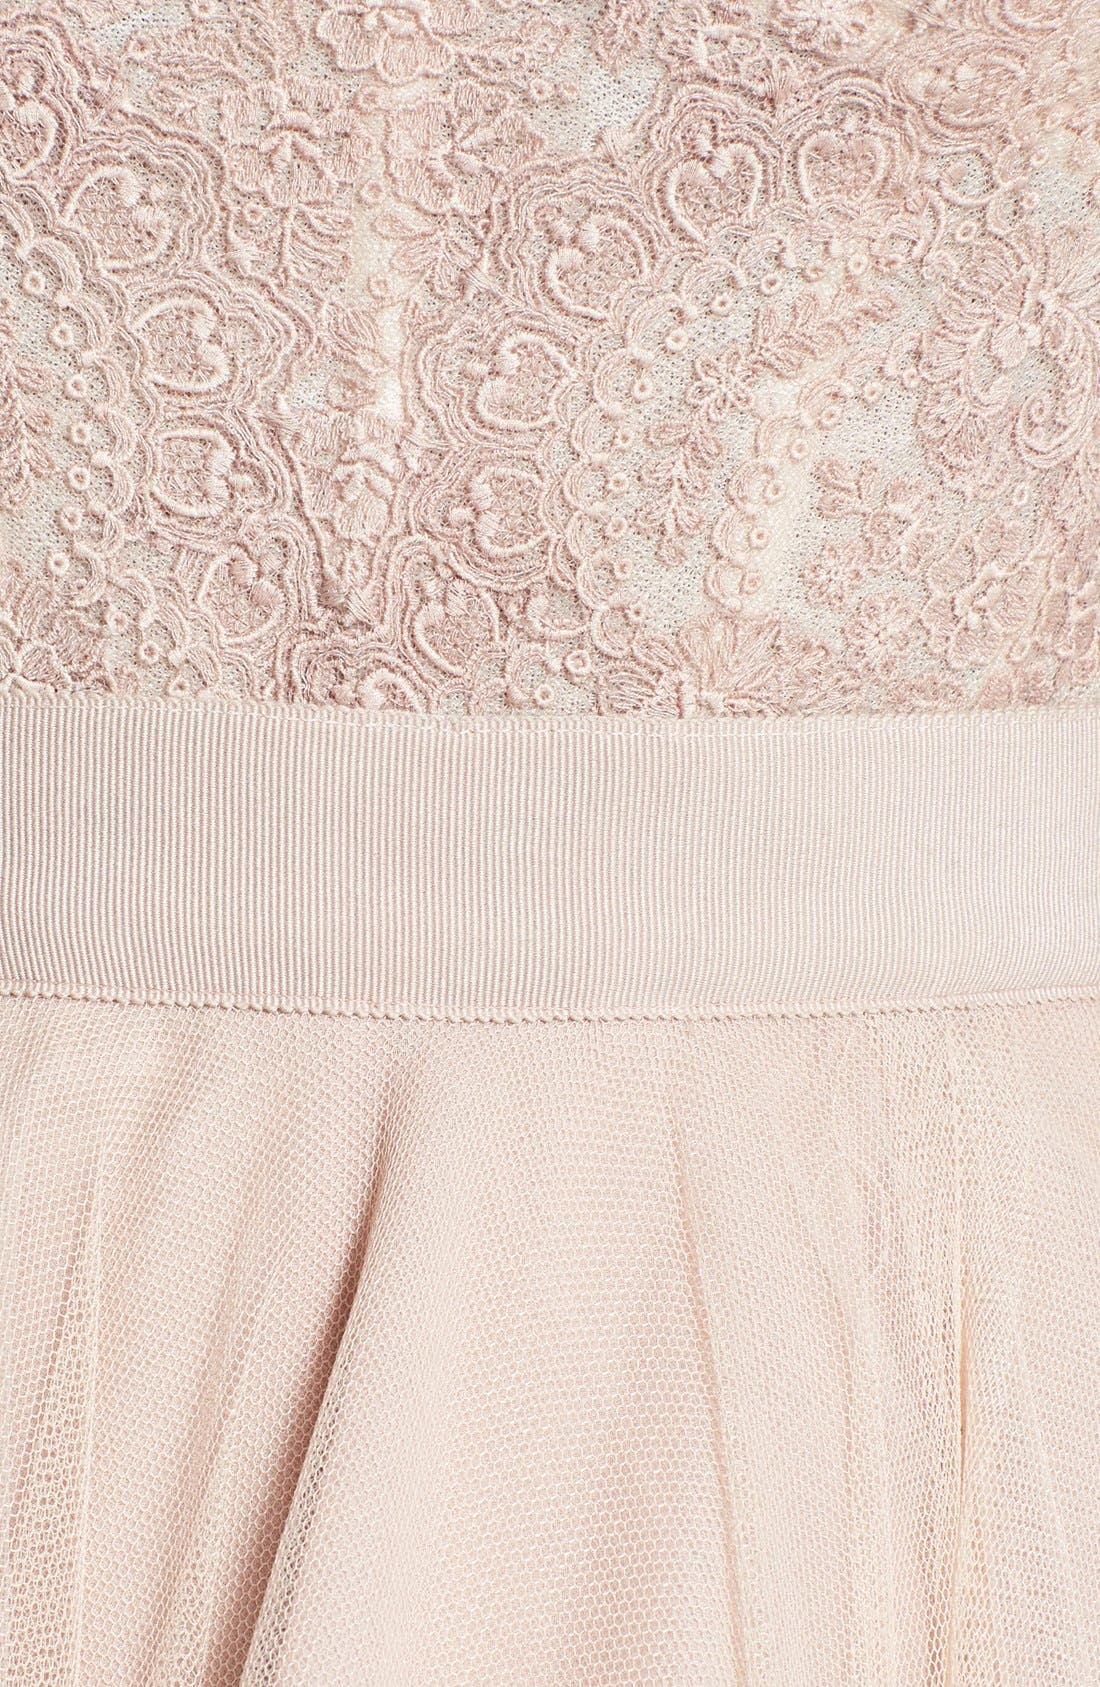 WATTERS, Carina Lace Bustier, Alternate thumbnail 5, color, 950